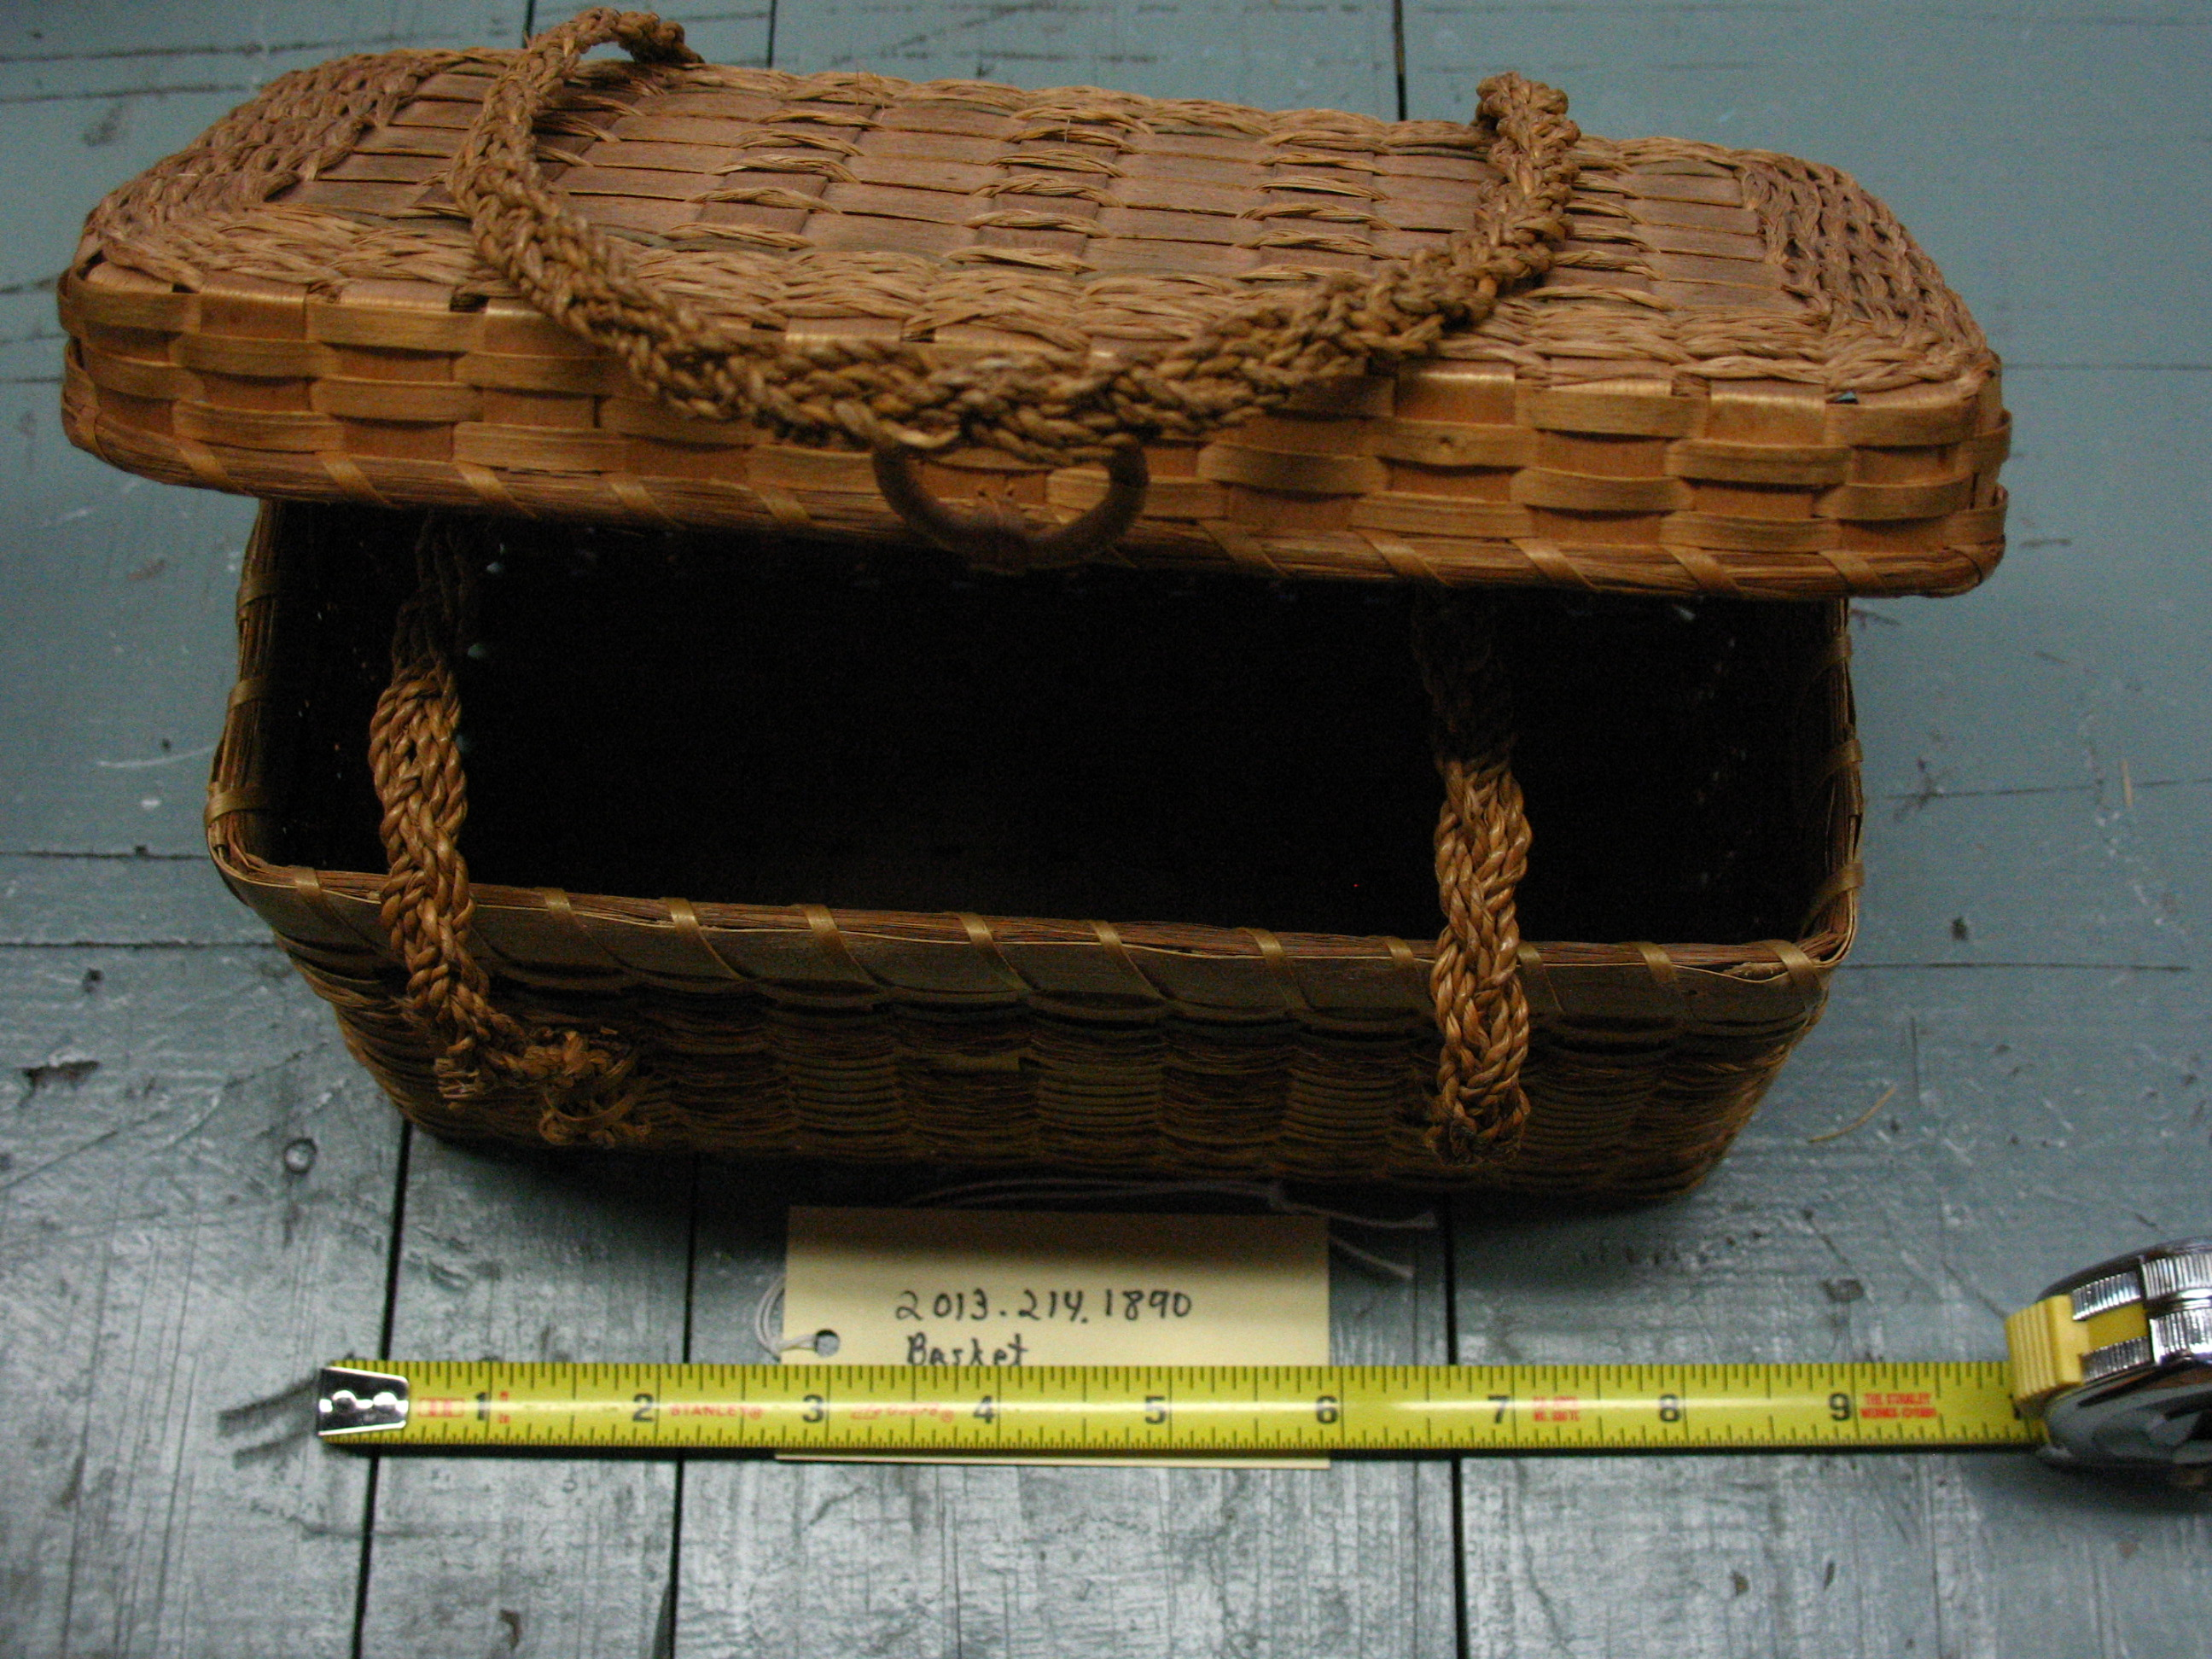 Native American sweetgrass basket with lid